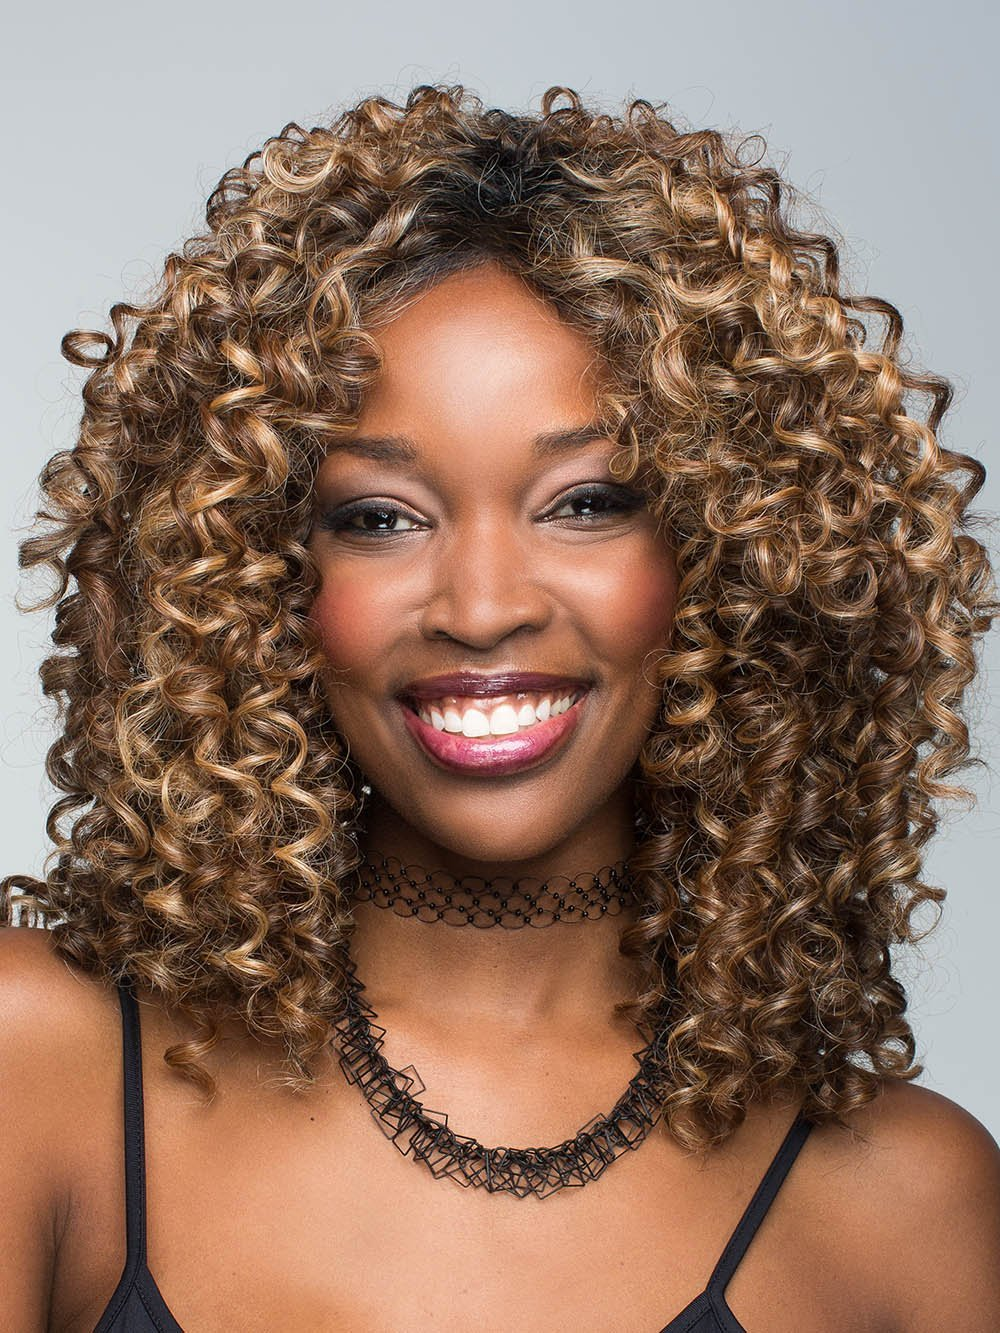 Diva By Revlon Colored Curly Wig With Lace Front Hair Extensions